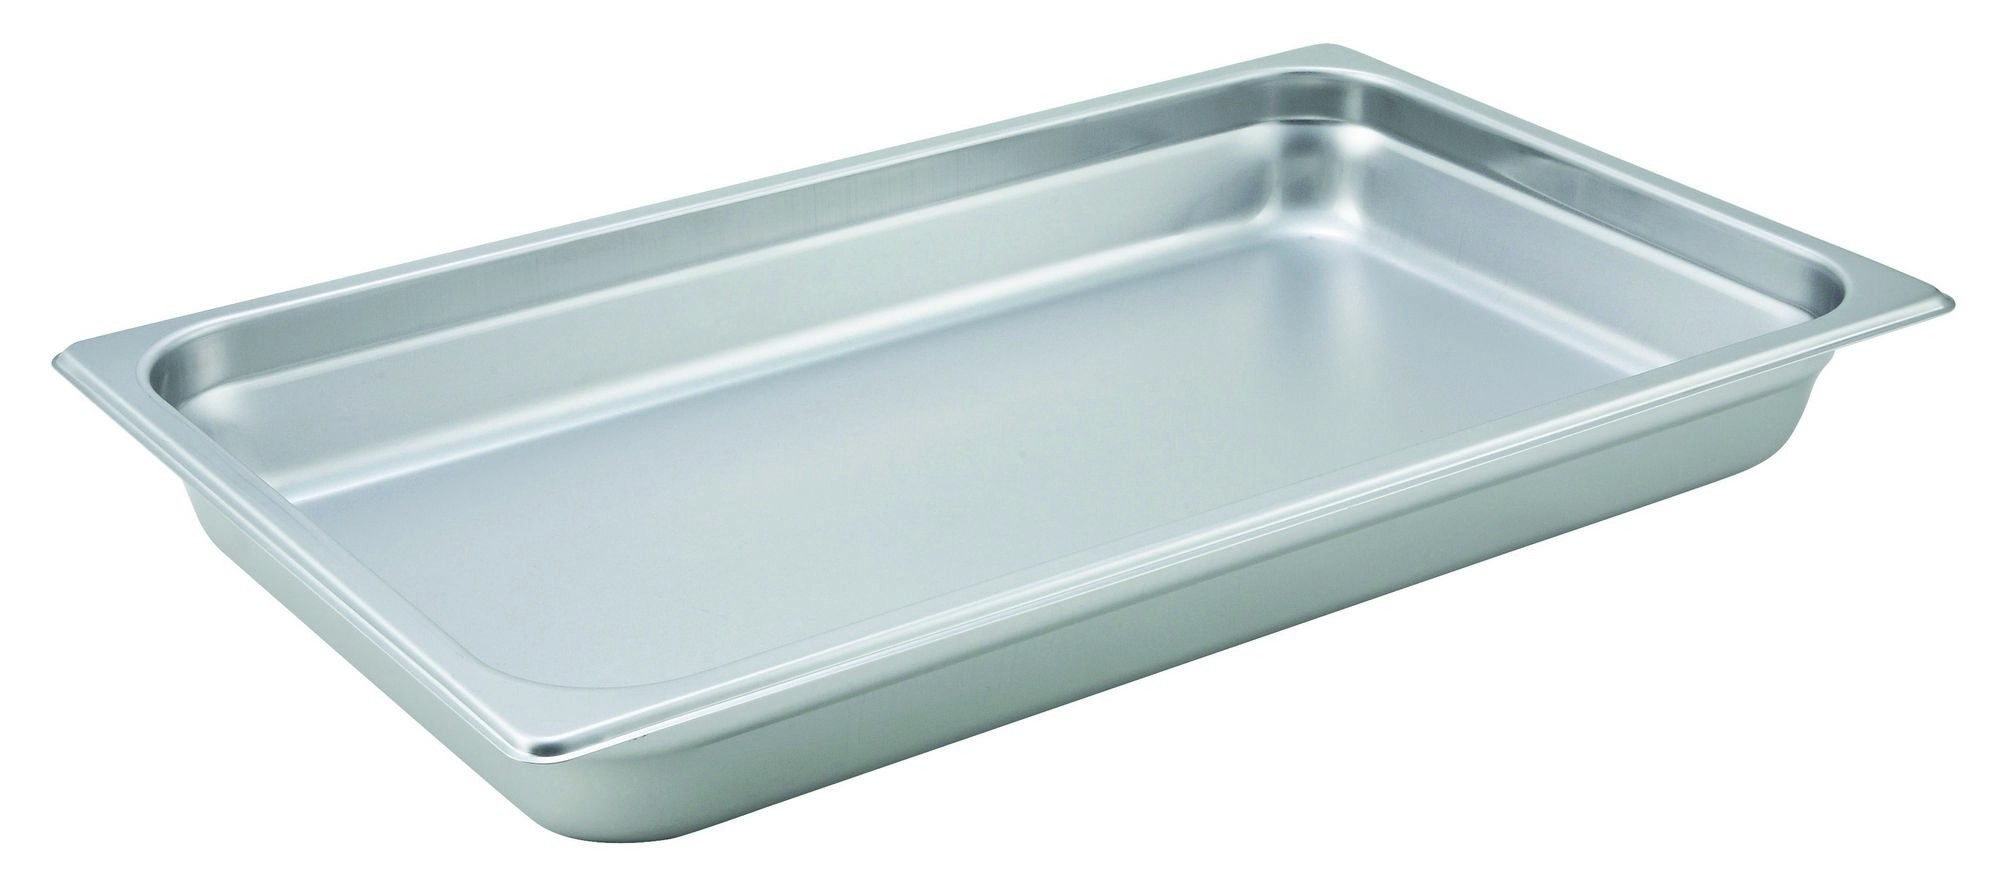 "Winco SPJH-102 Full Size Anti-Jam 22 Gauge Steam Table Pan 2-1/2"" Deep"